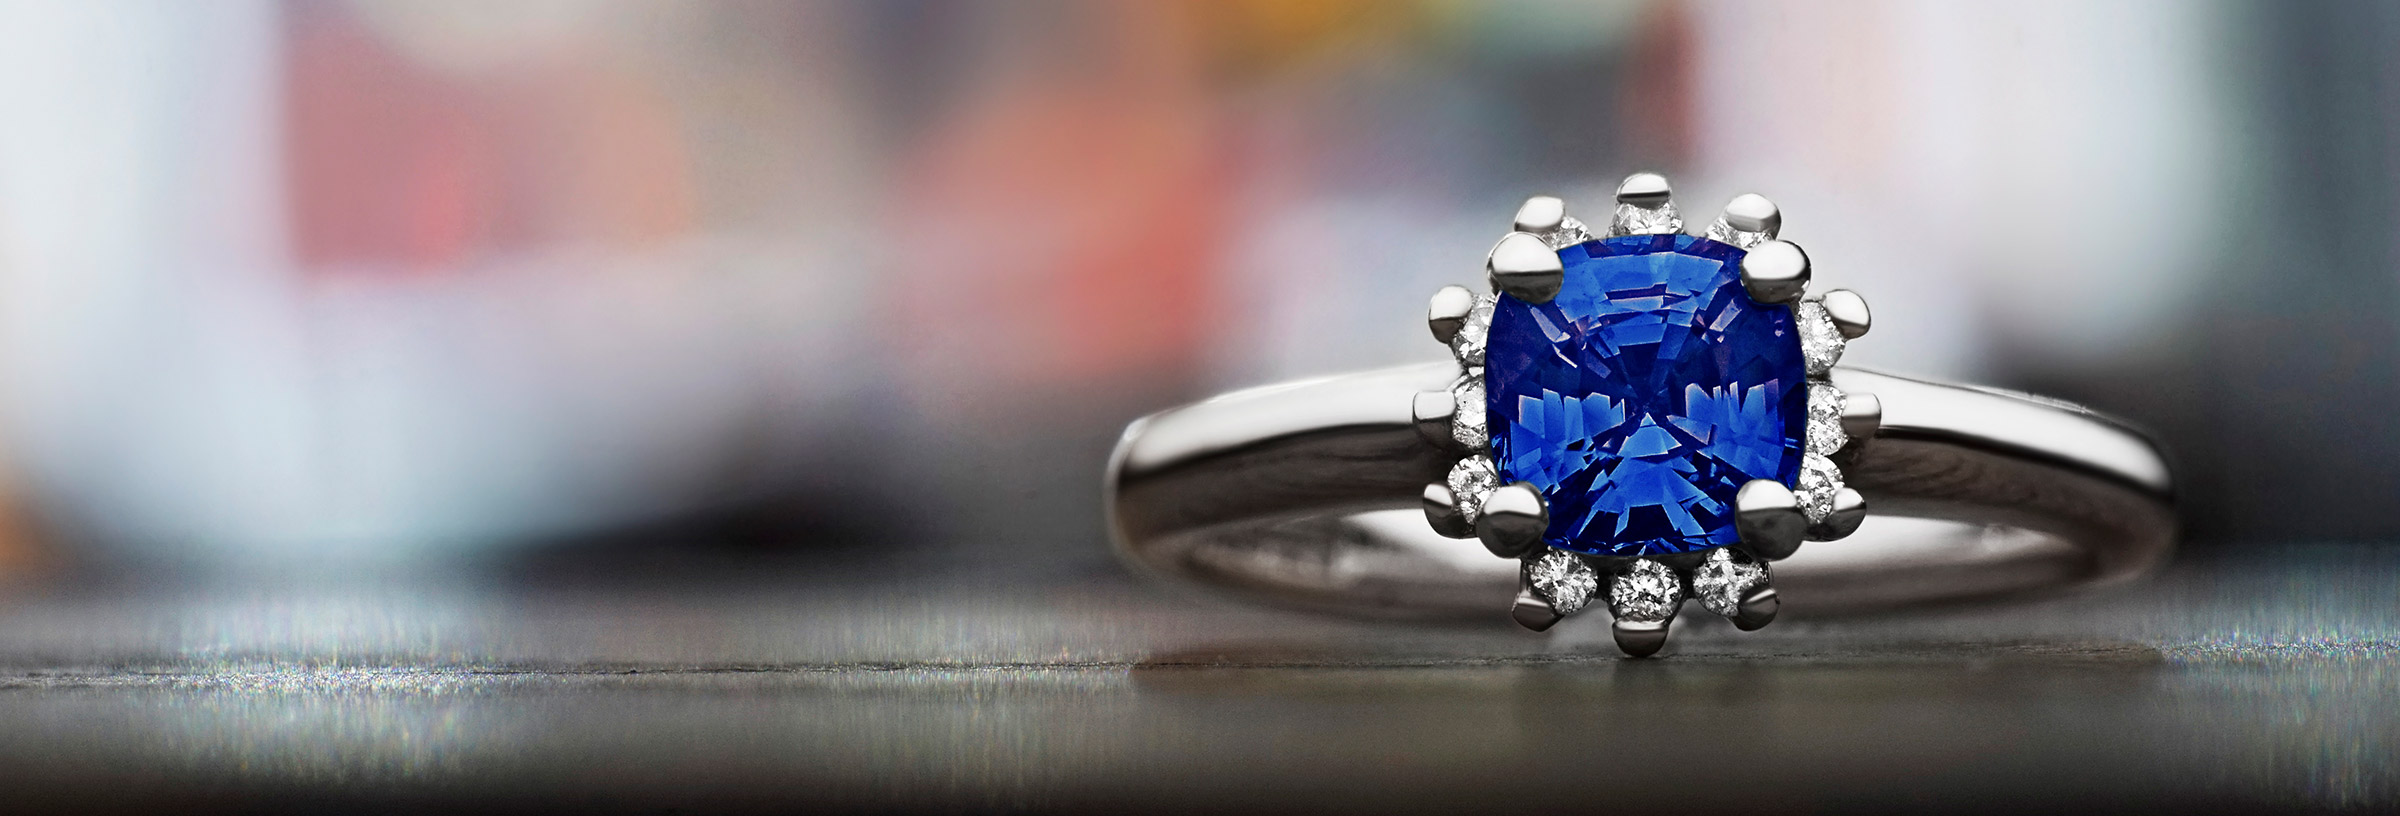 1.09ct cushion cut blue Tanzanite and 9ct white gold engagement ring